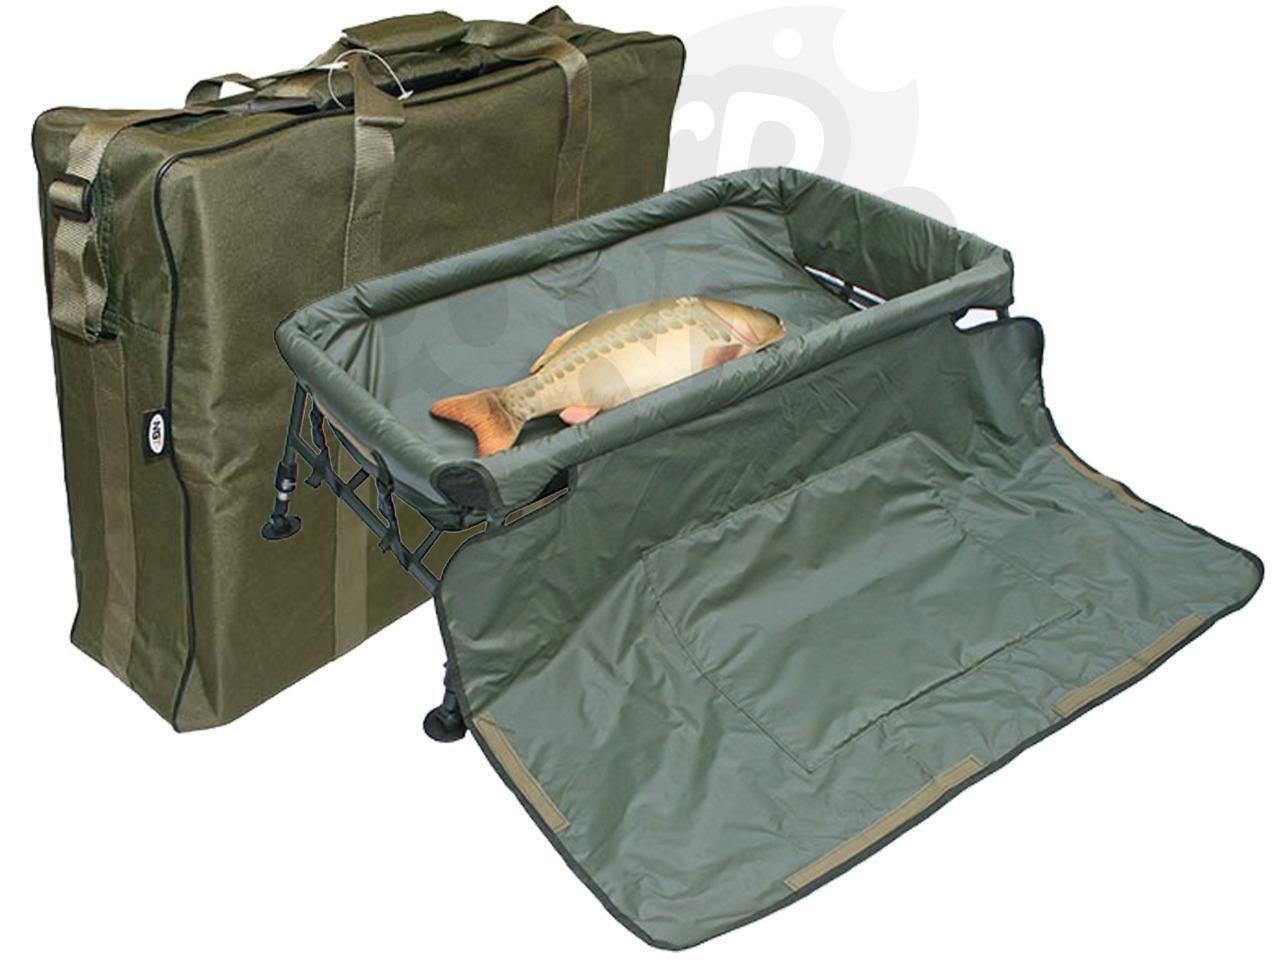 Fishing Carp Cradle Cradle Carp Framed Unhooking Mat With Adjustable Legs Plus Carryall 62235d